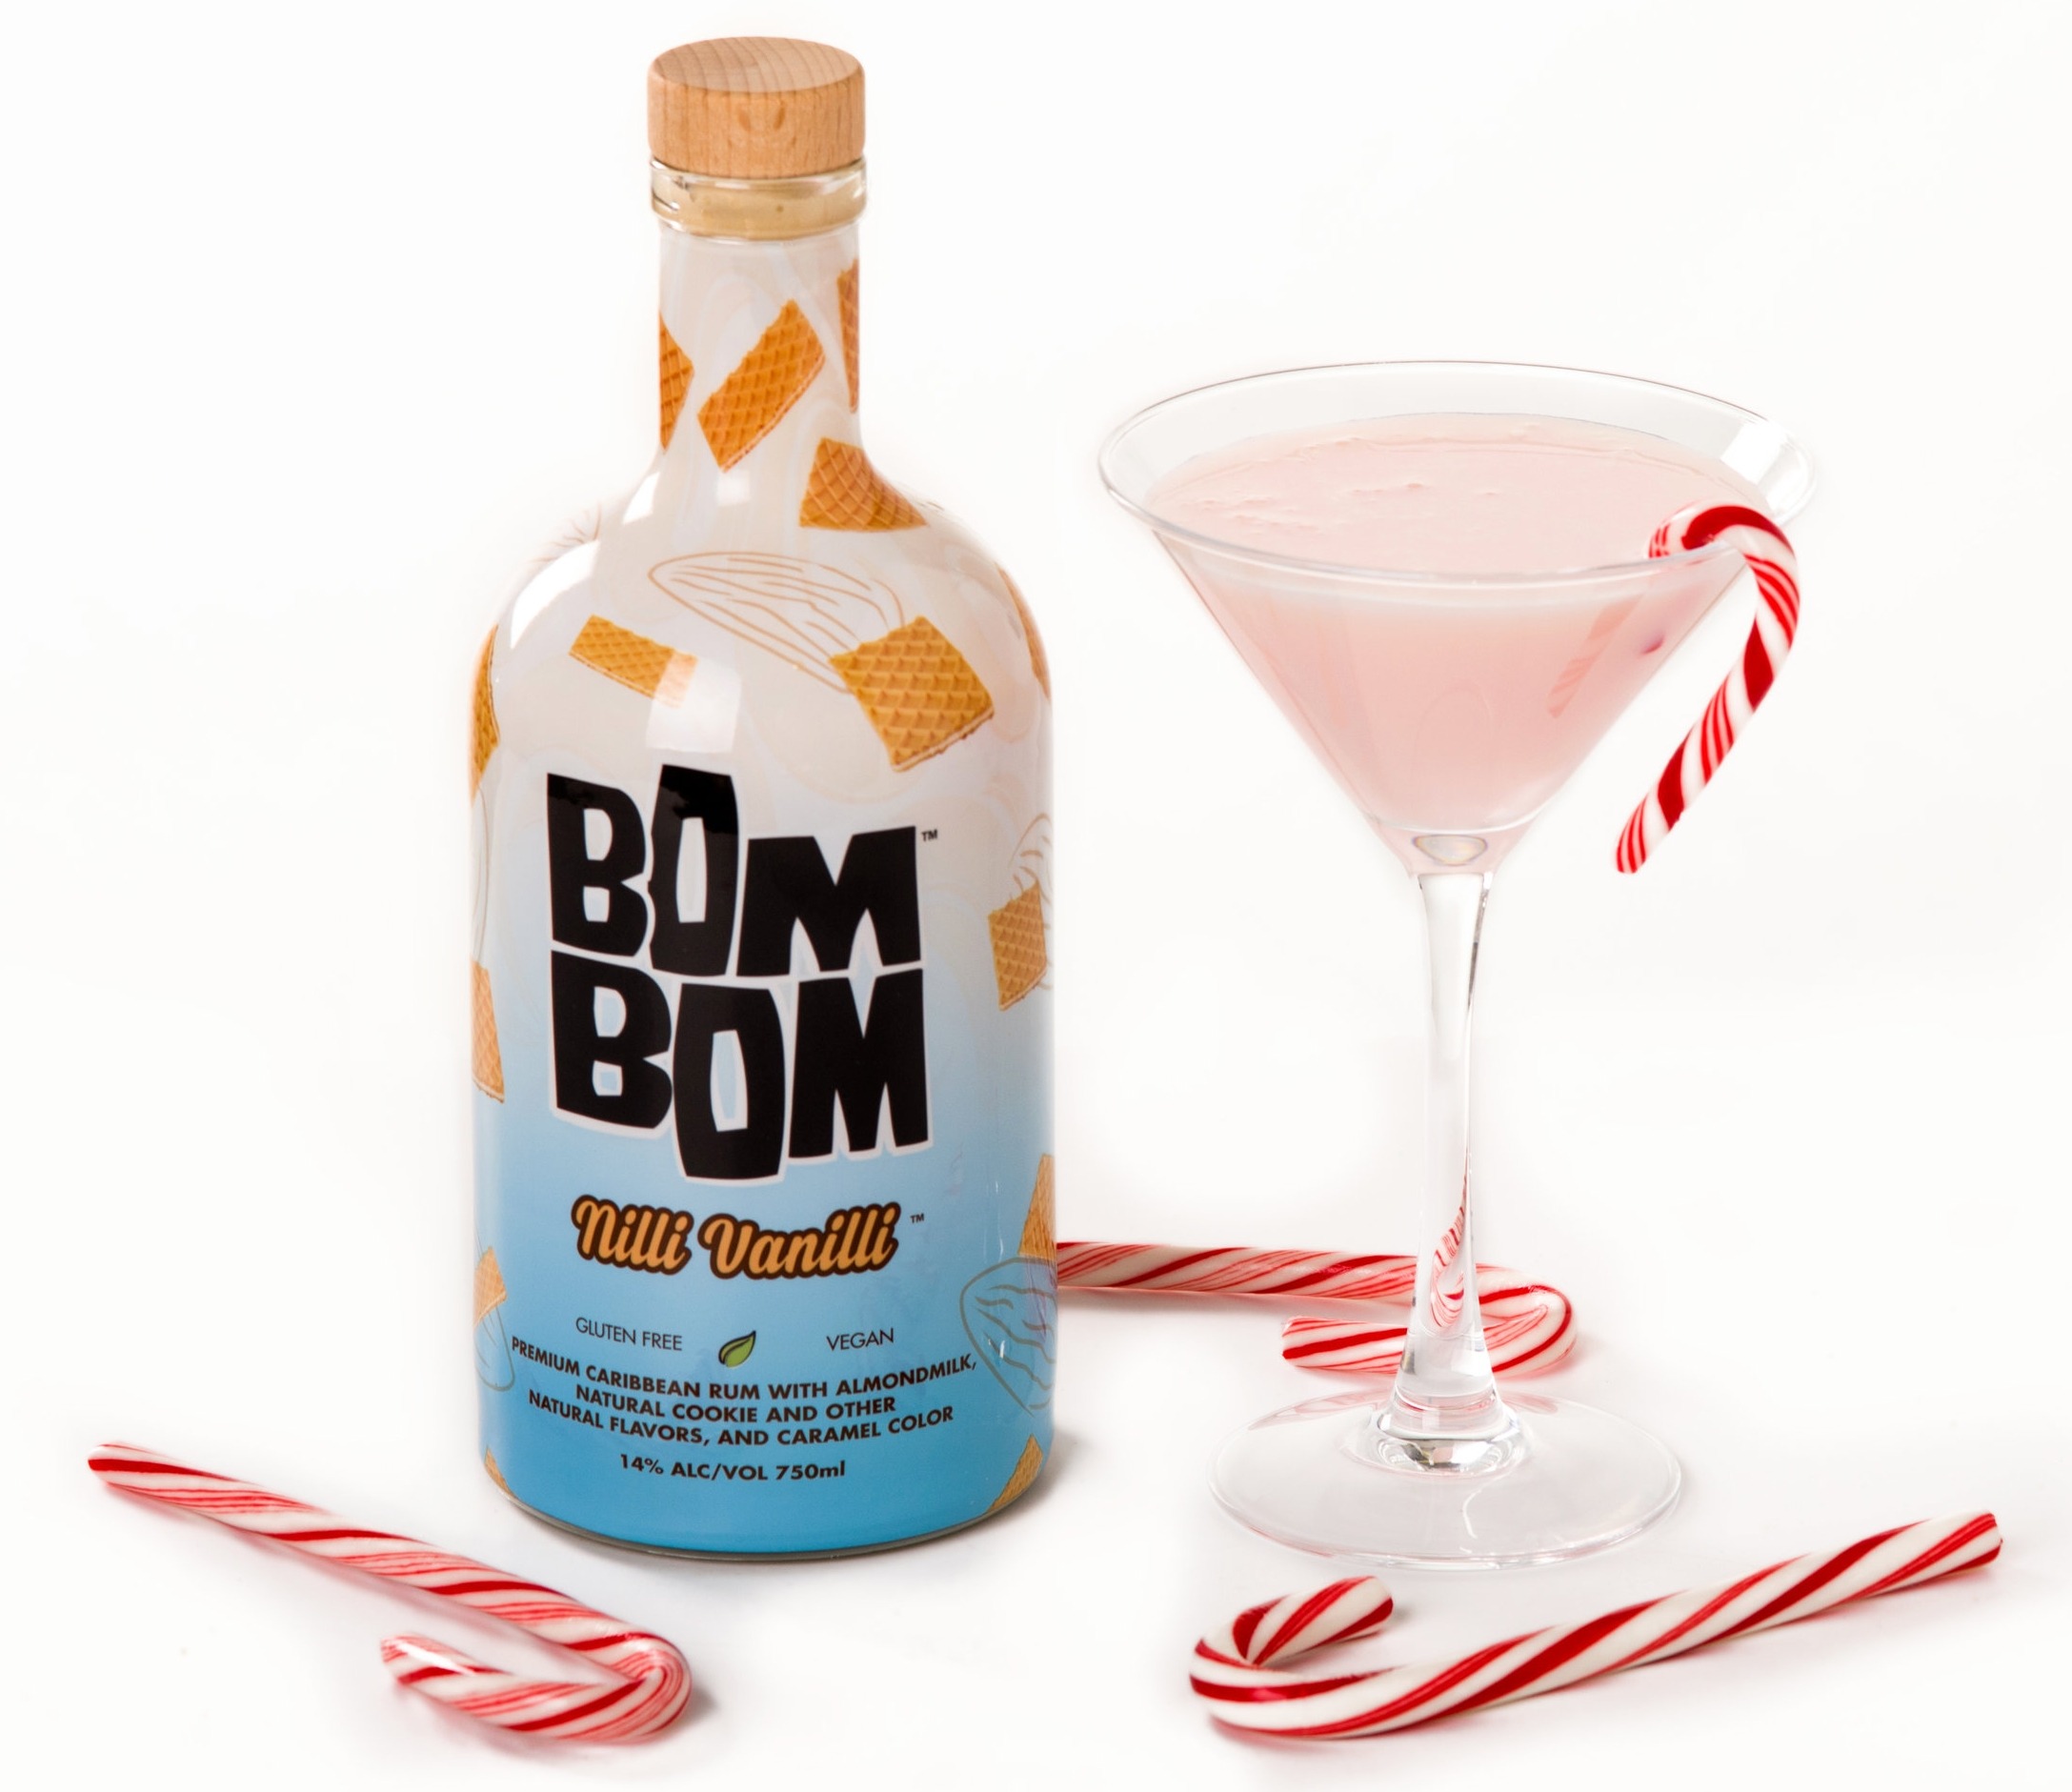 BOM BOM HOLIDAY Peppermint Martini with Nilli Vanilli and Candy Cane and drink Garnish.JPG